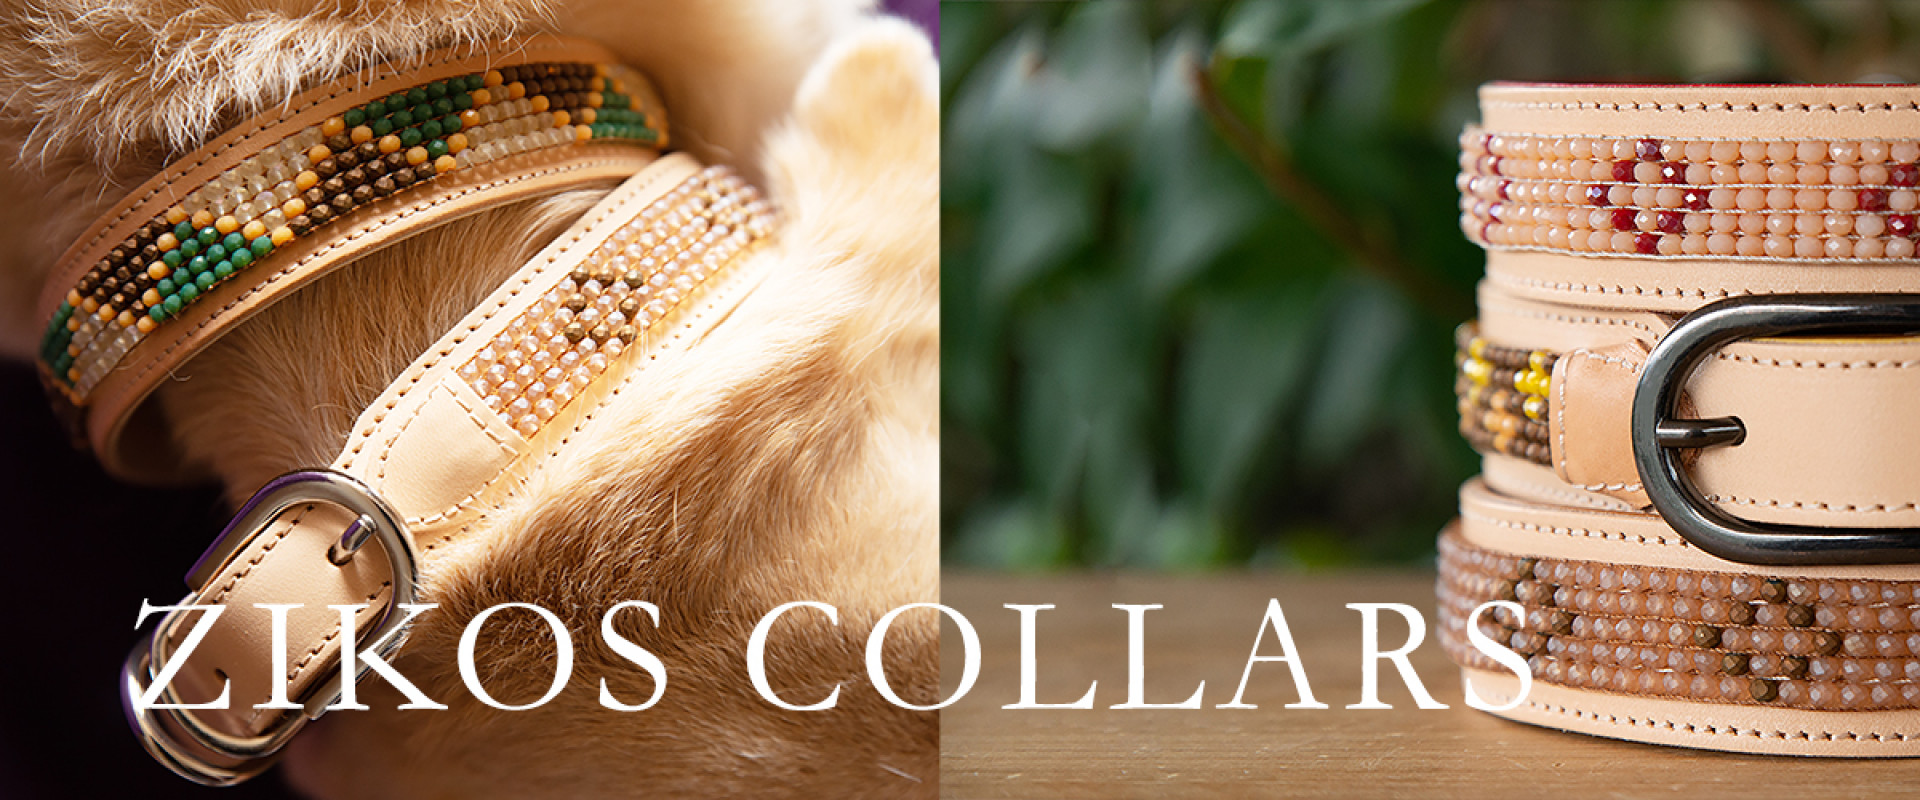 Zikos Collection | Designer-quality pet accessories by zikos